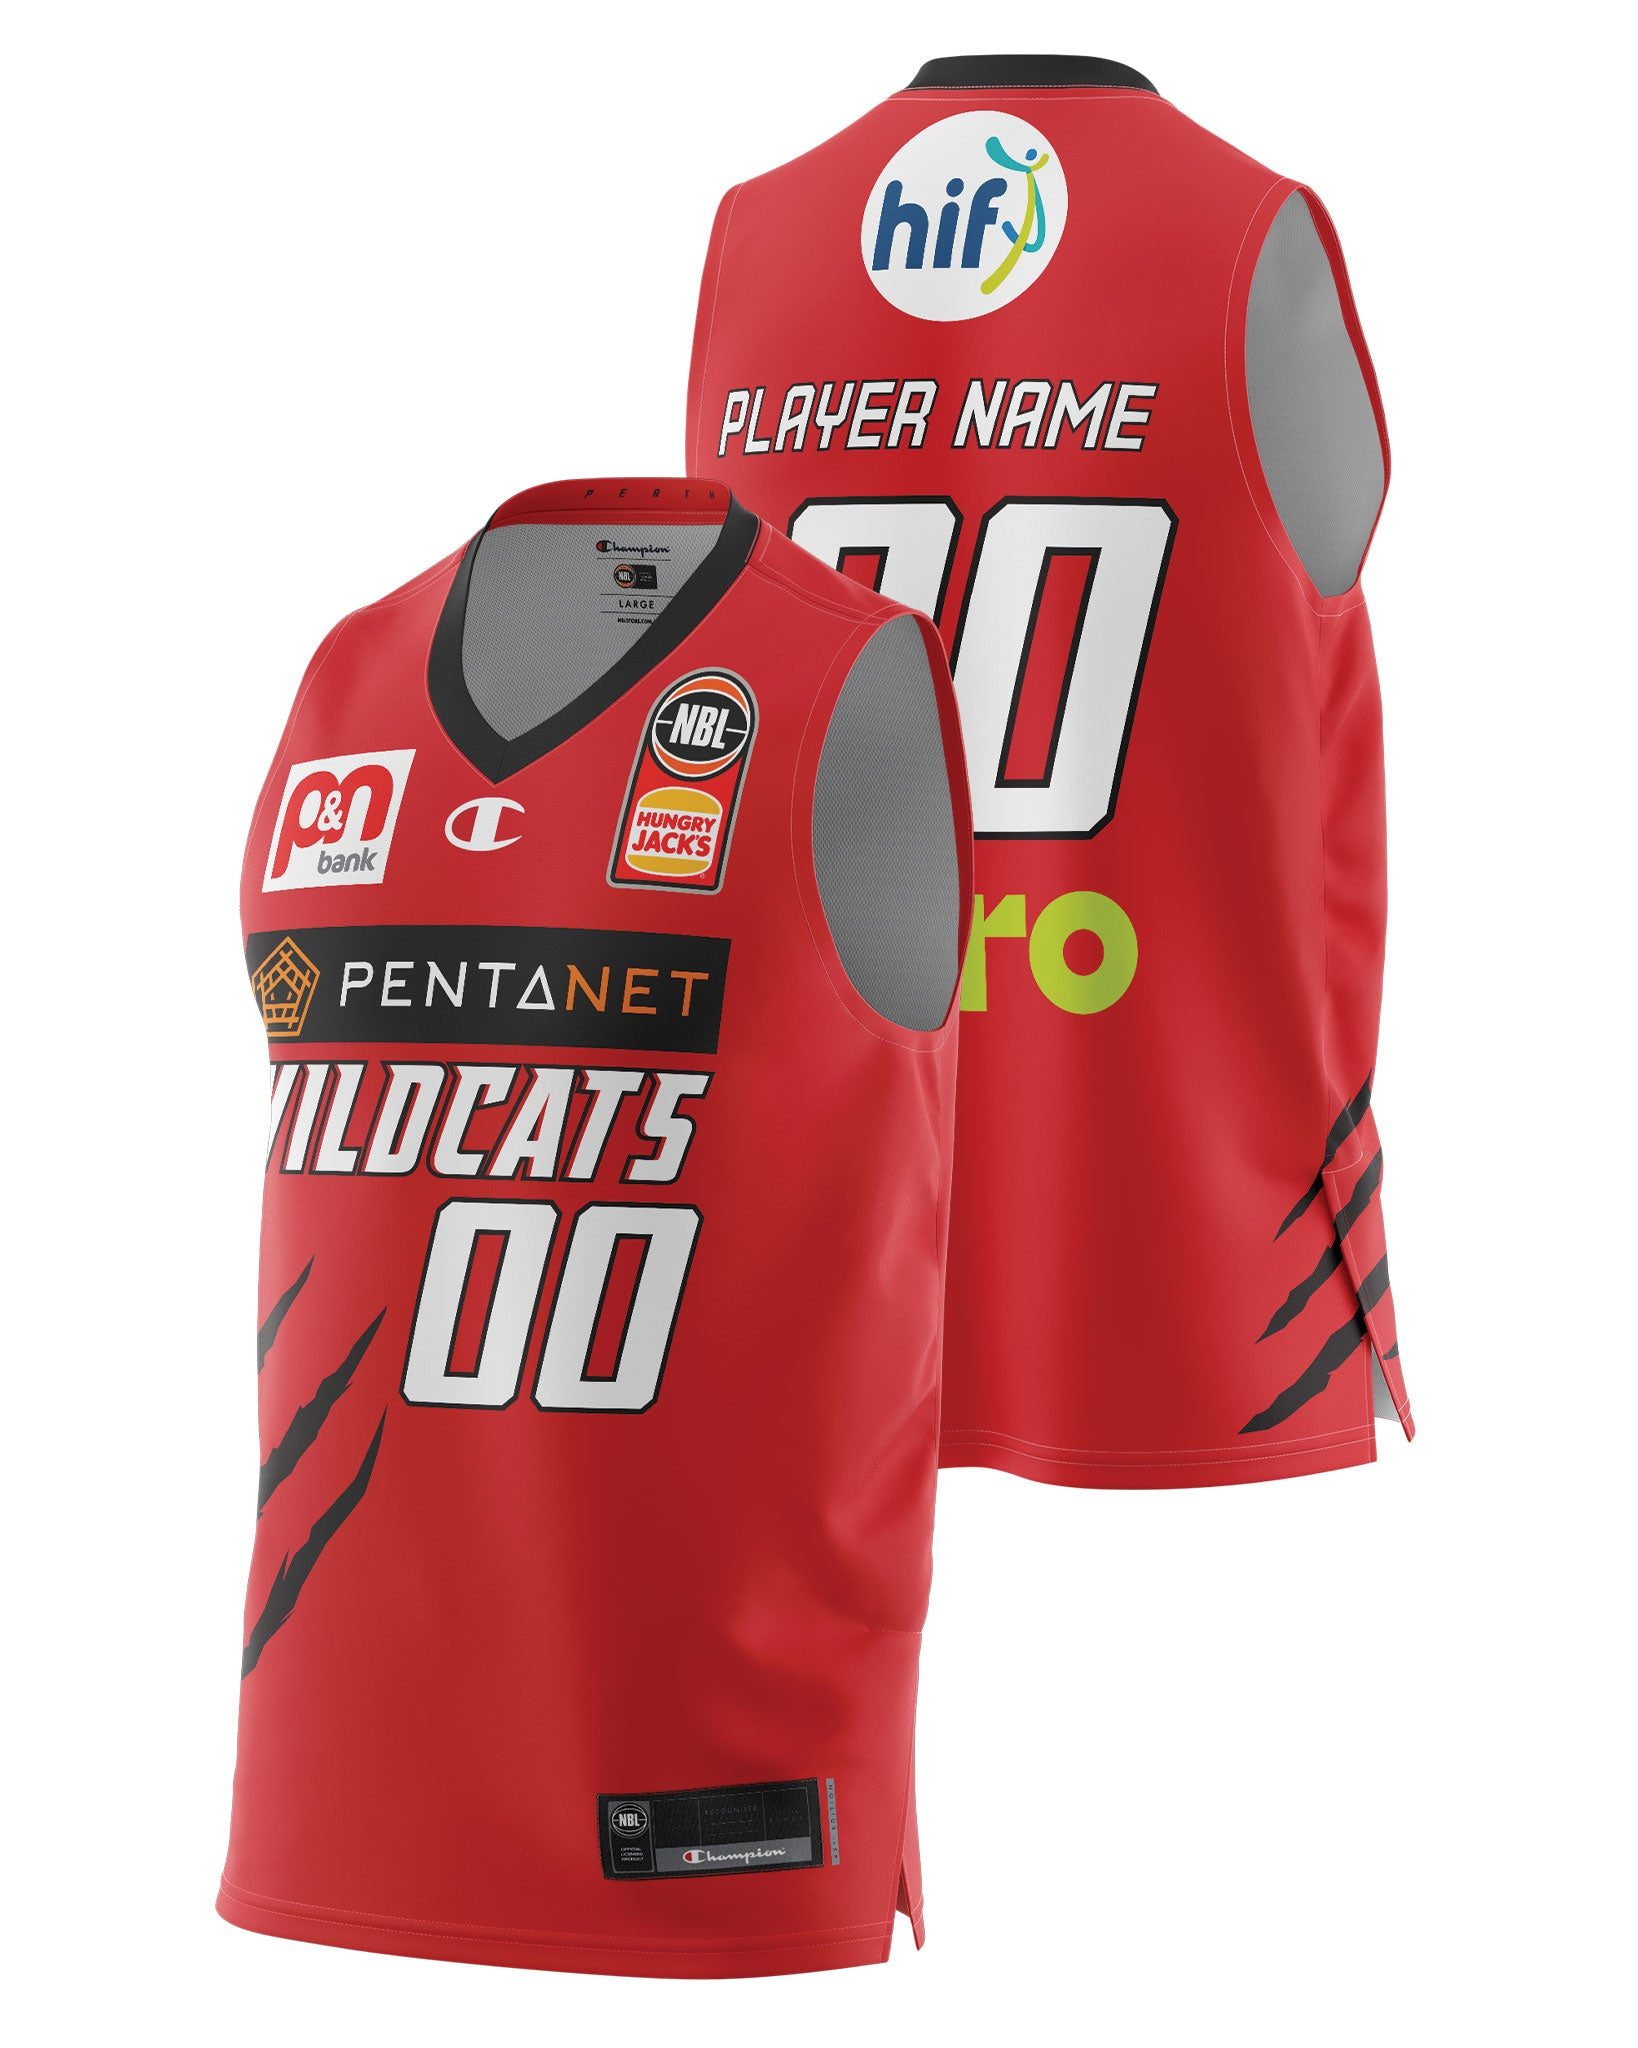 Perth Wildcats 20/21 Authentic Home Jersey - Other Players